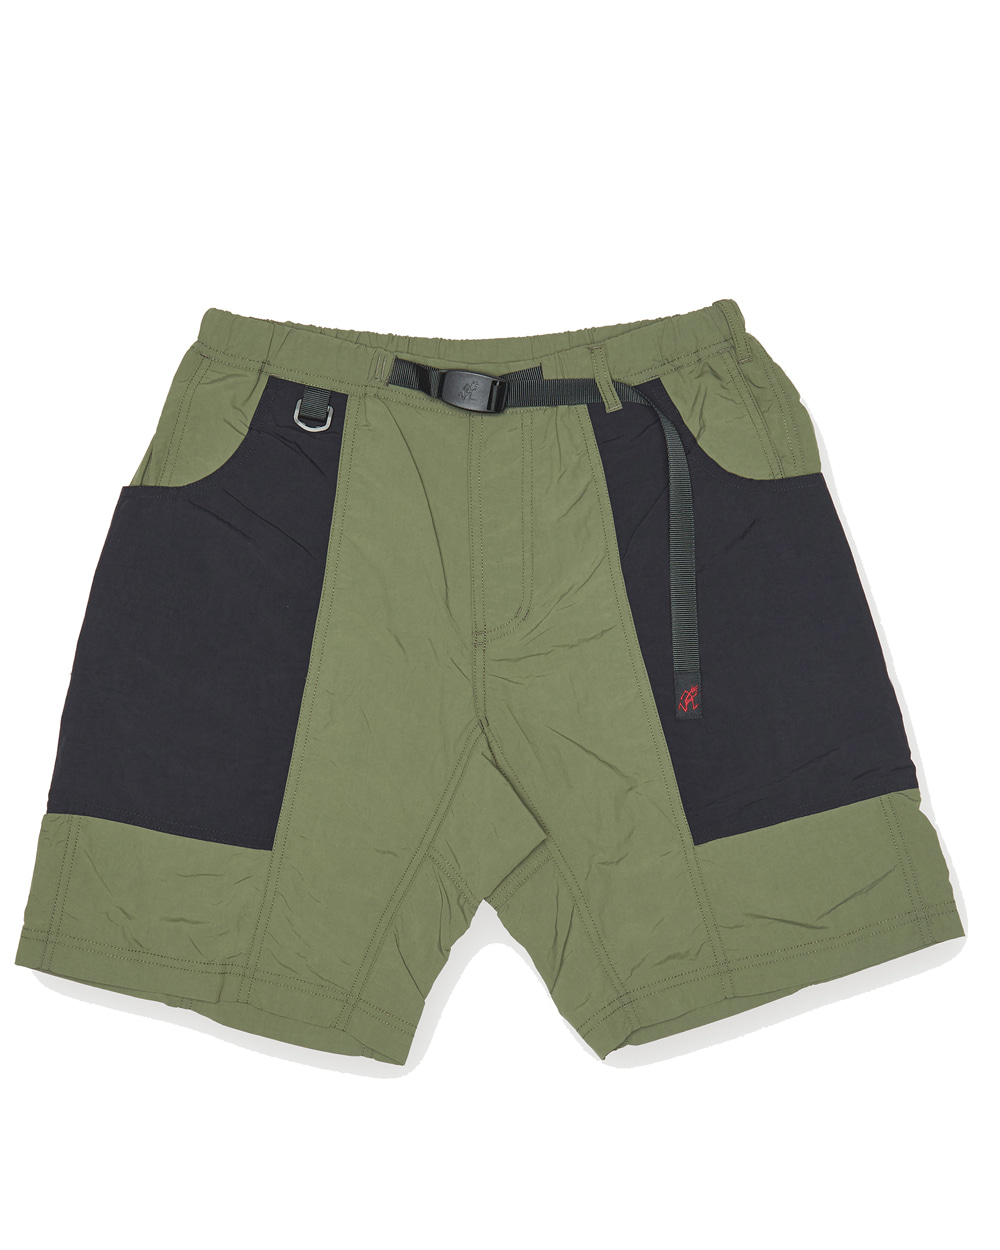 그라미치 SHELL GEAR SHORTS (Olive/Black)